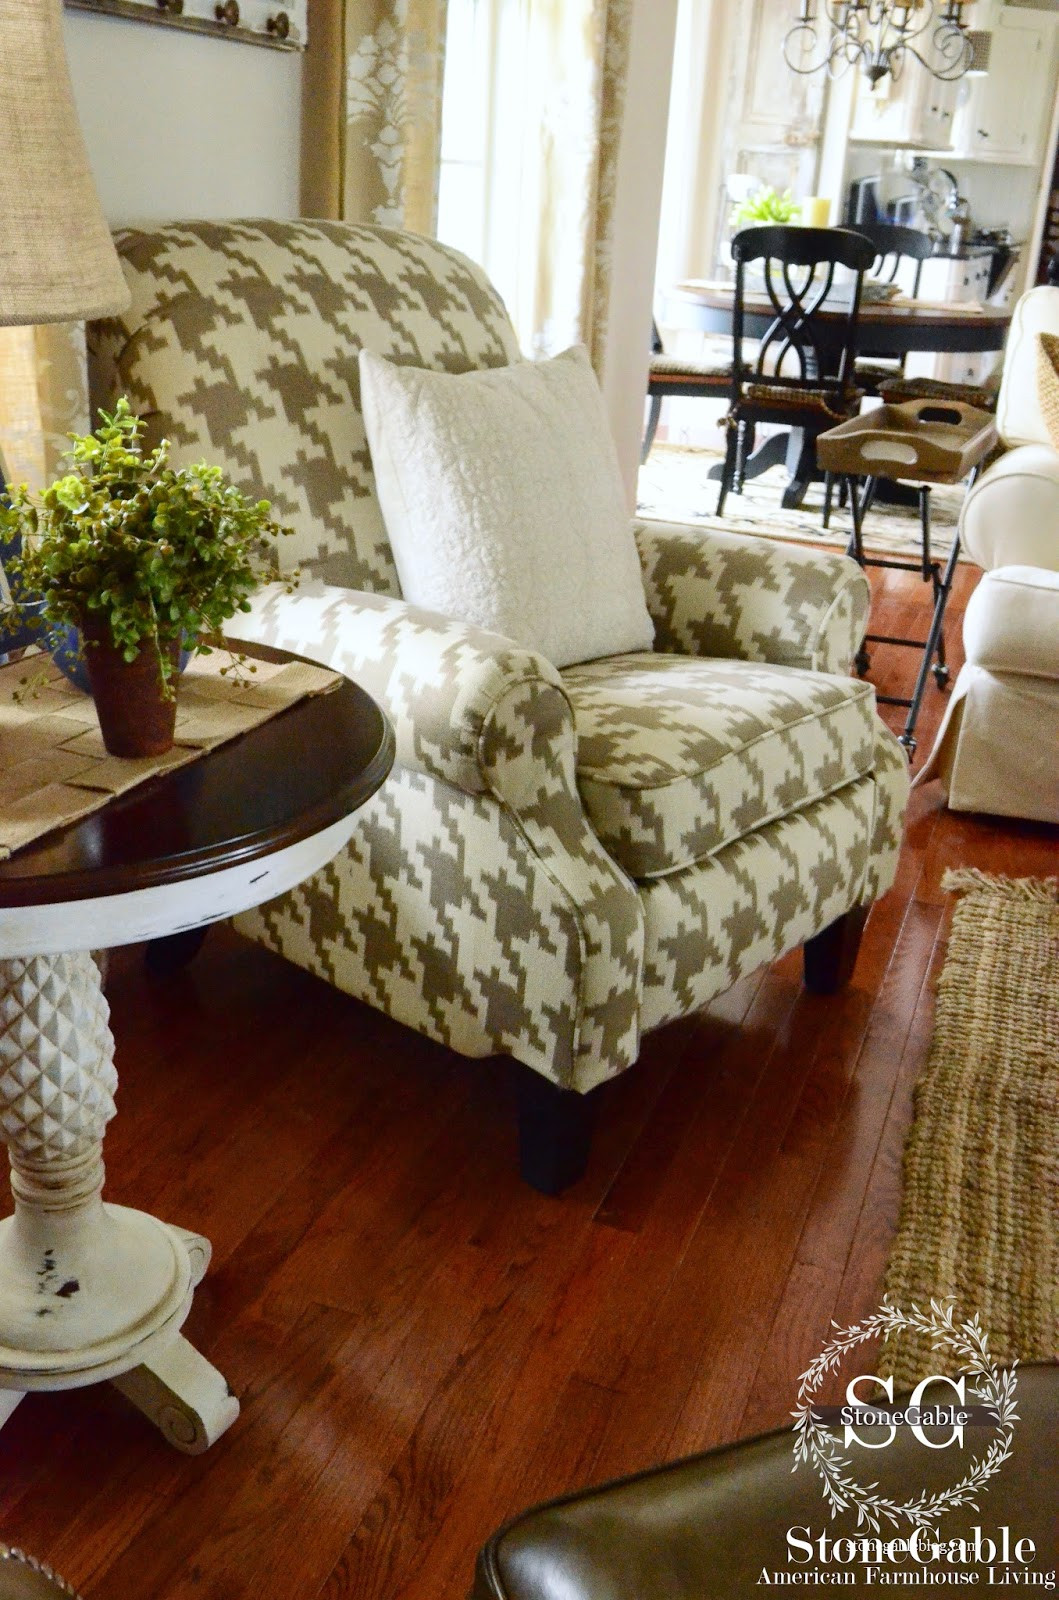 Best ideas about Family Room Chairs . Save or Pin FAMILY ROOM CHAIR REVEAL StoneGable Now.